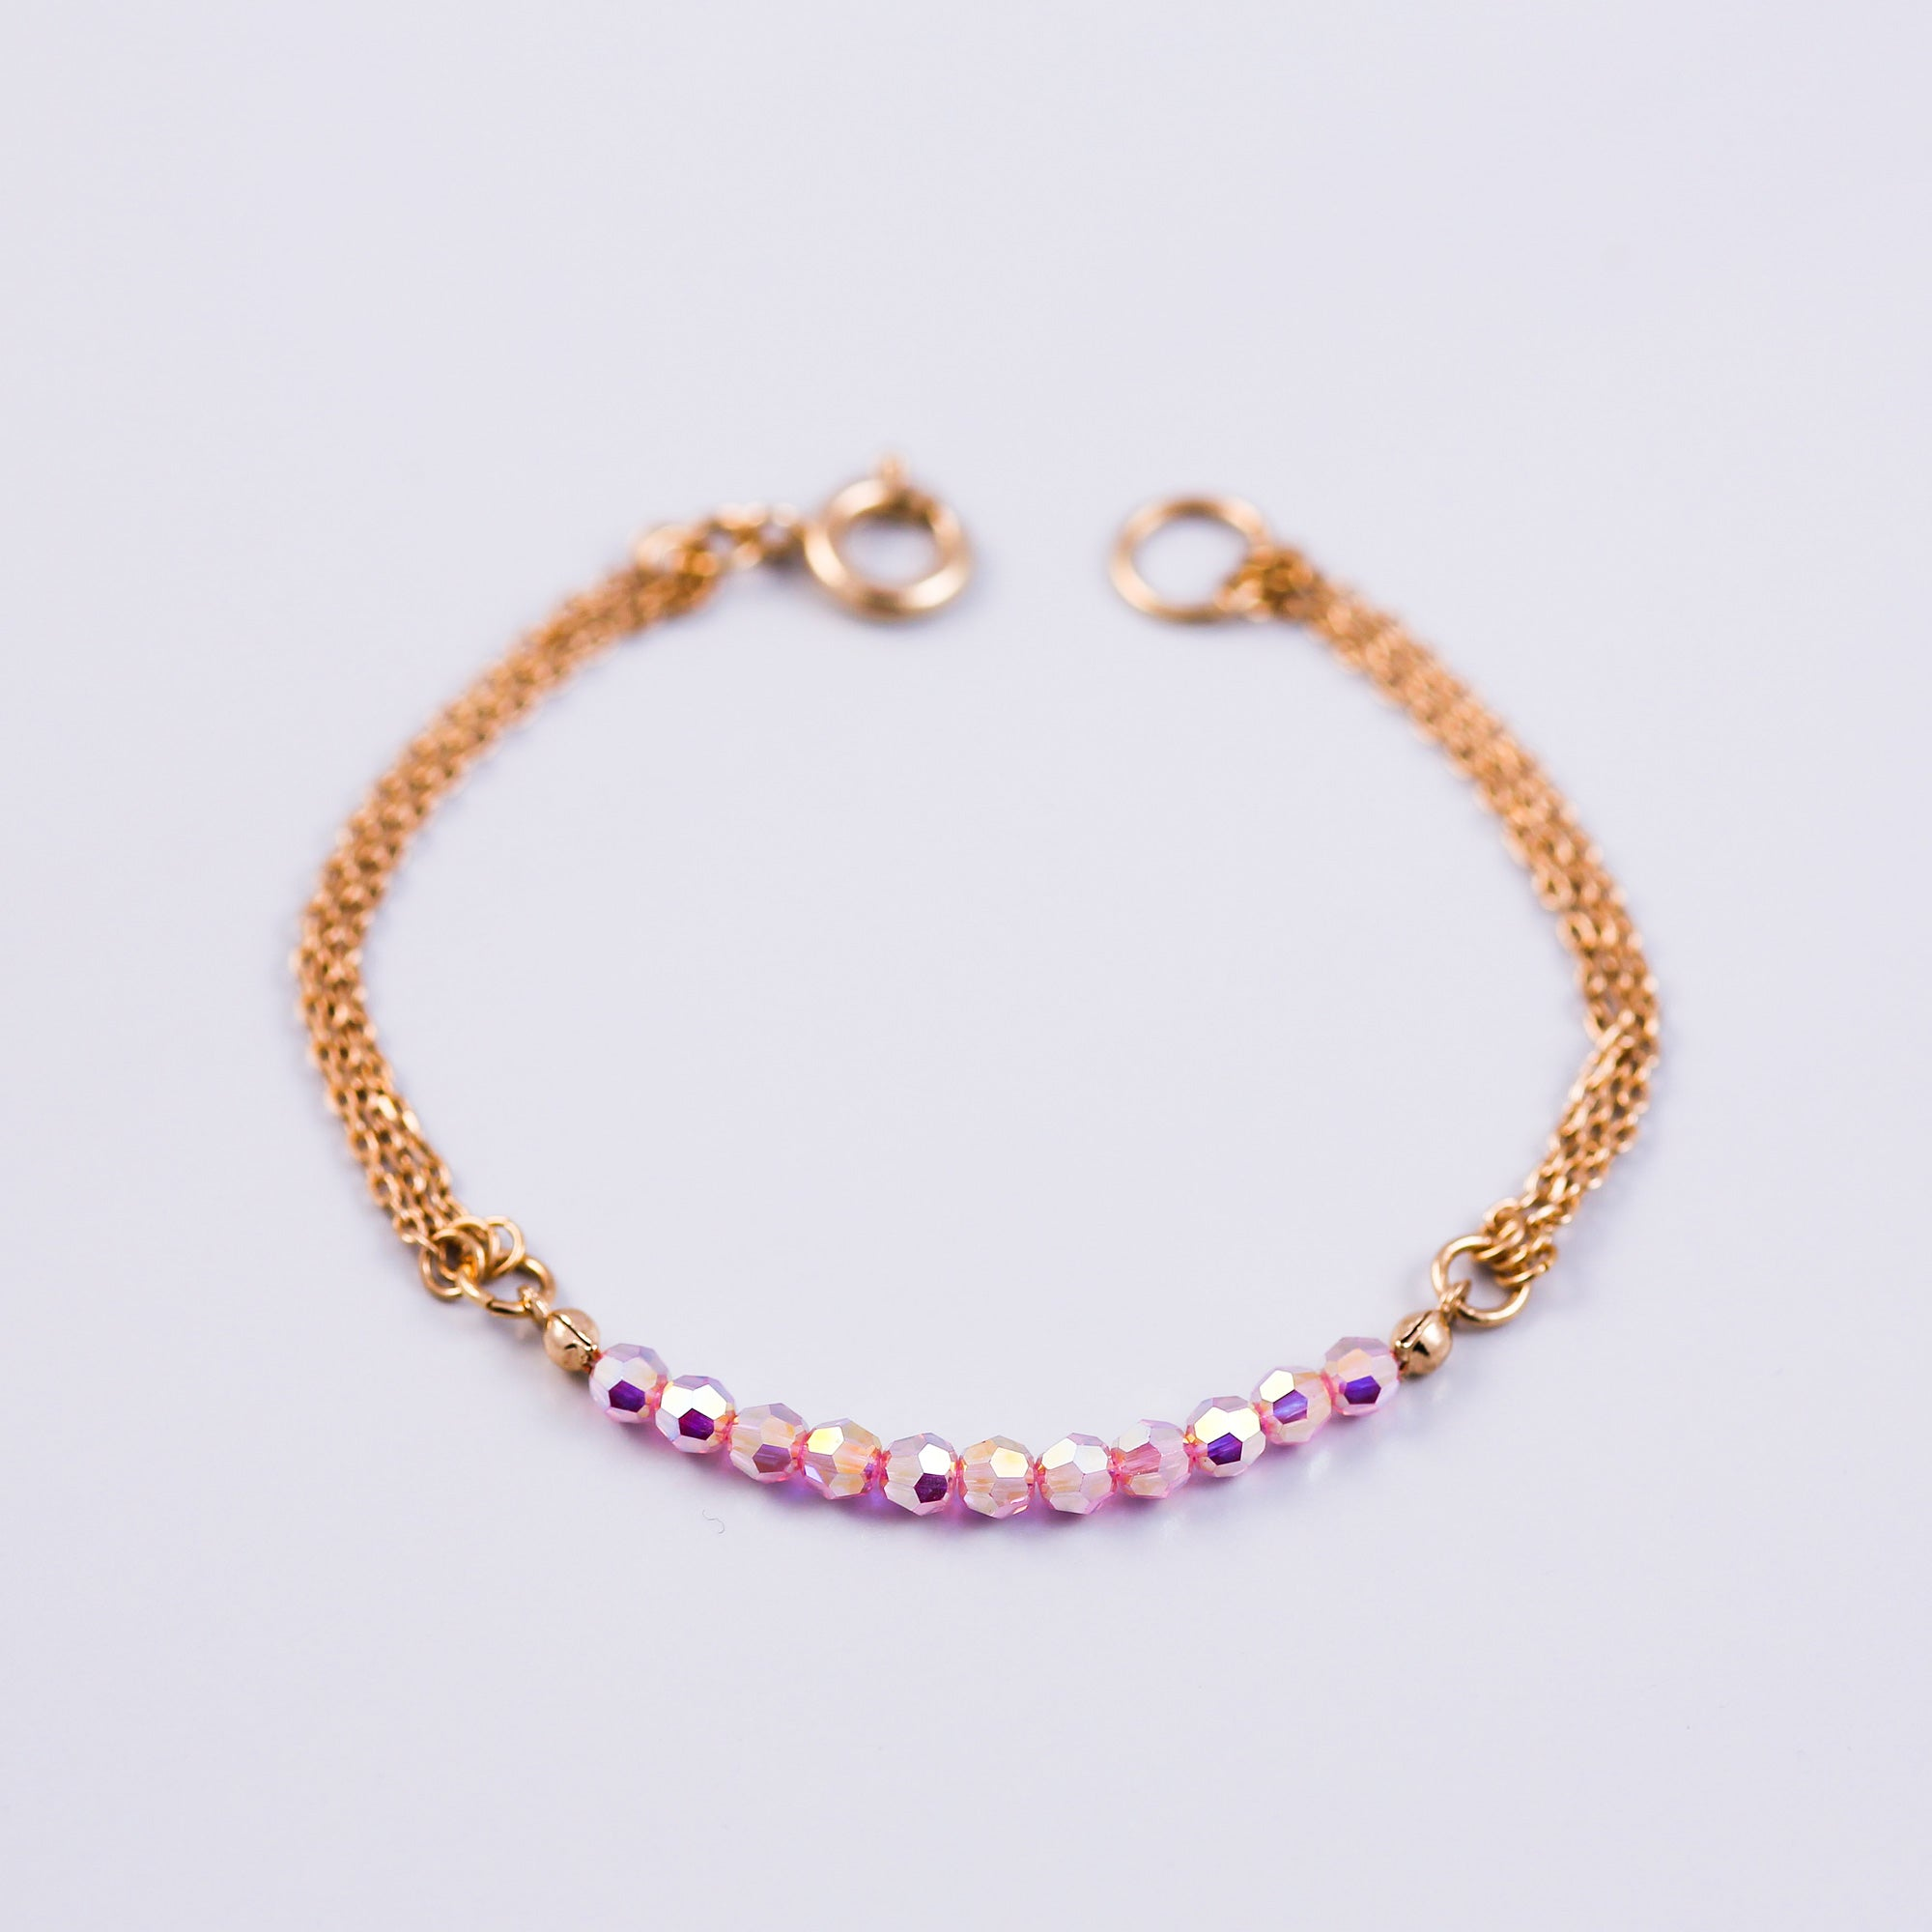 Crystal Bead Bracelet Gold & Light Rose AB